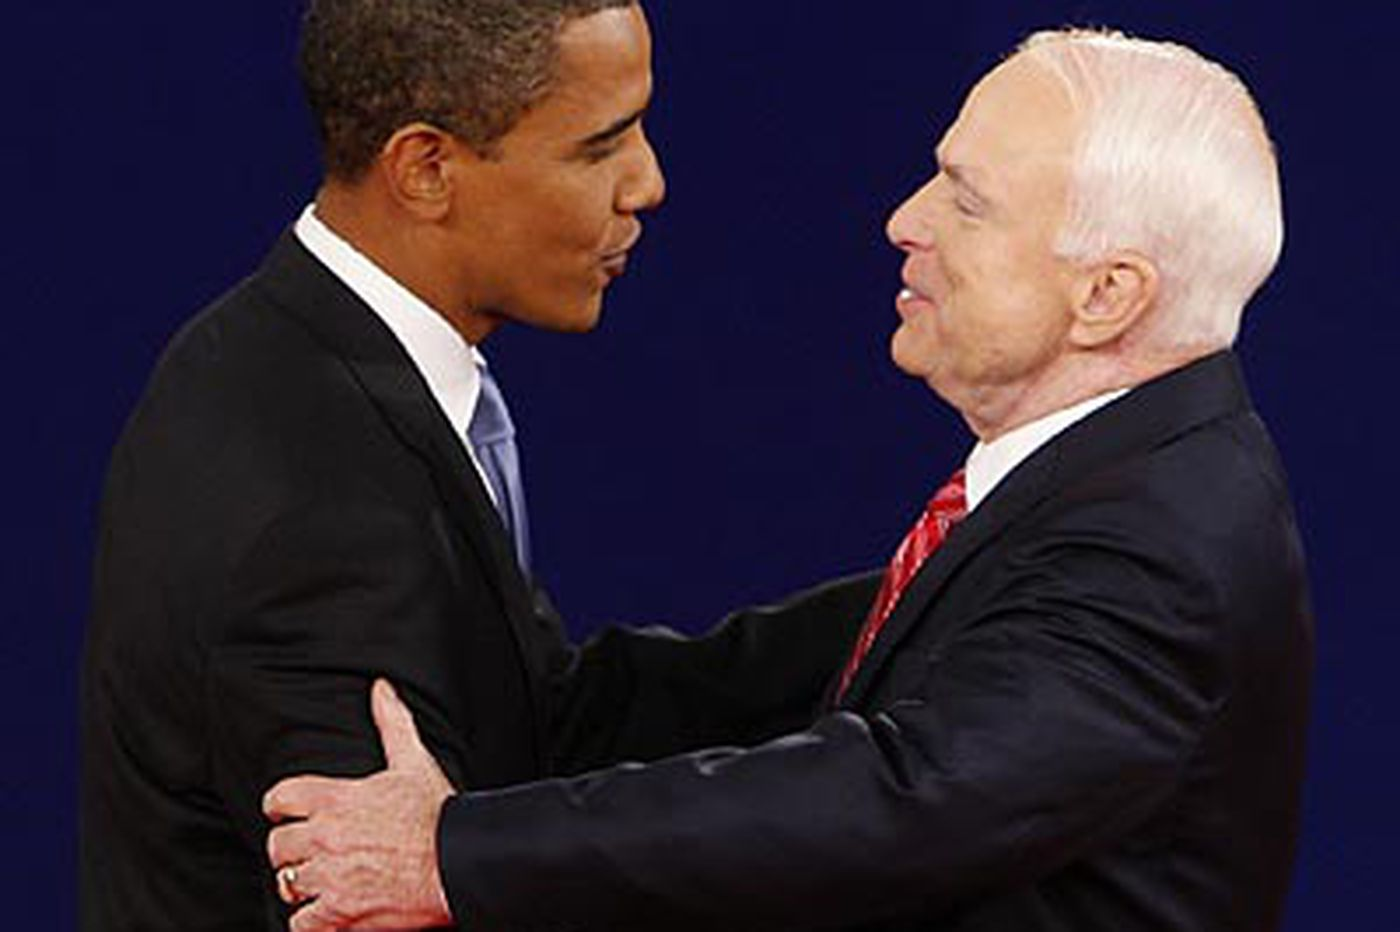 The Elephant in the Room: McCain may be Obama's secret weapon